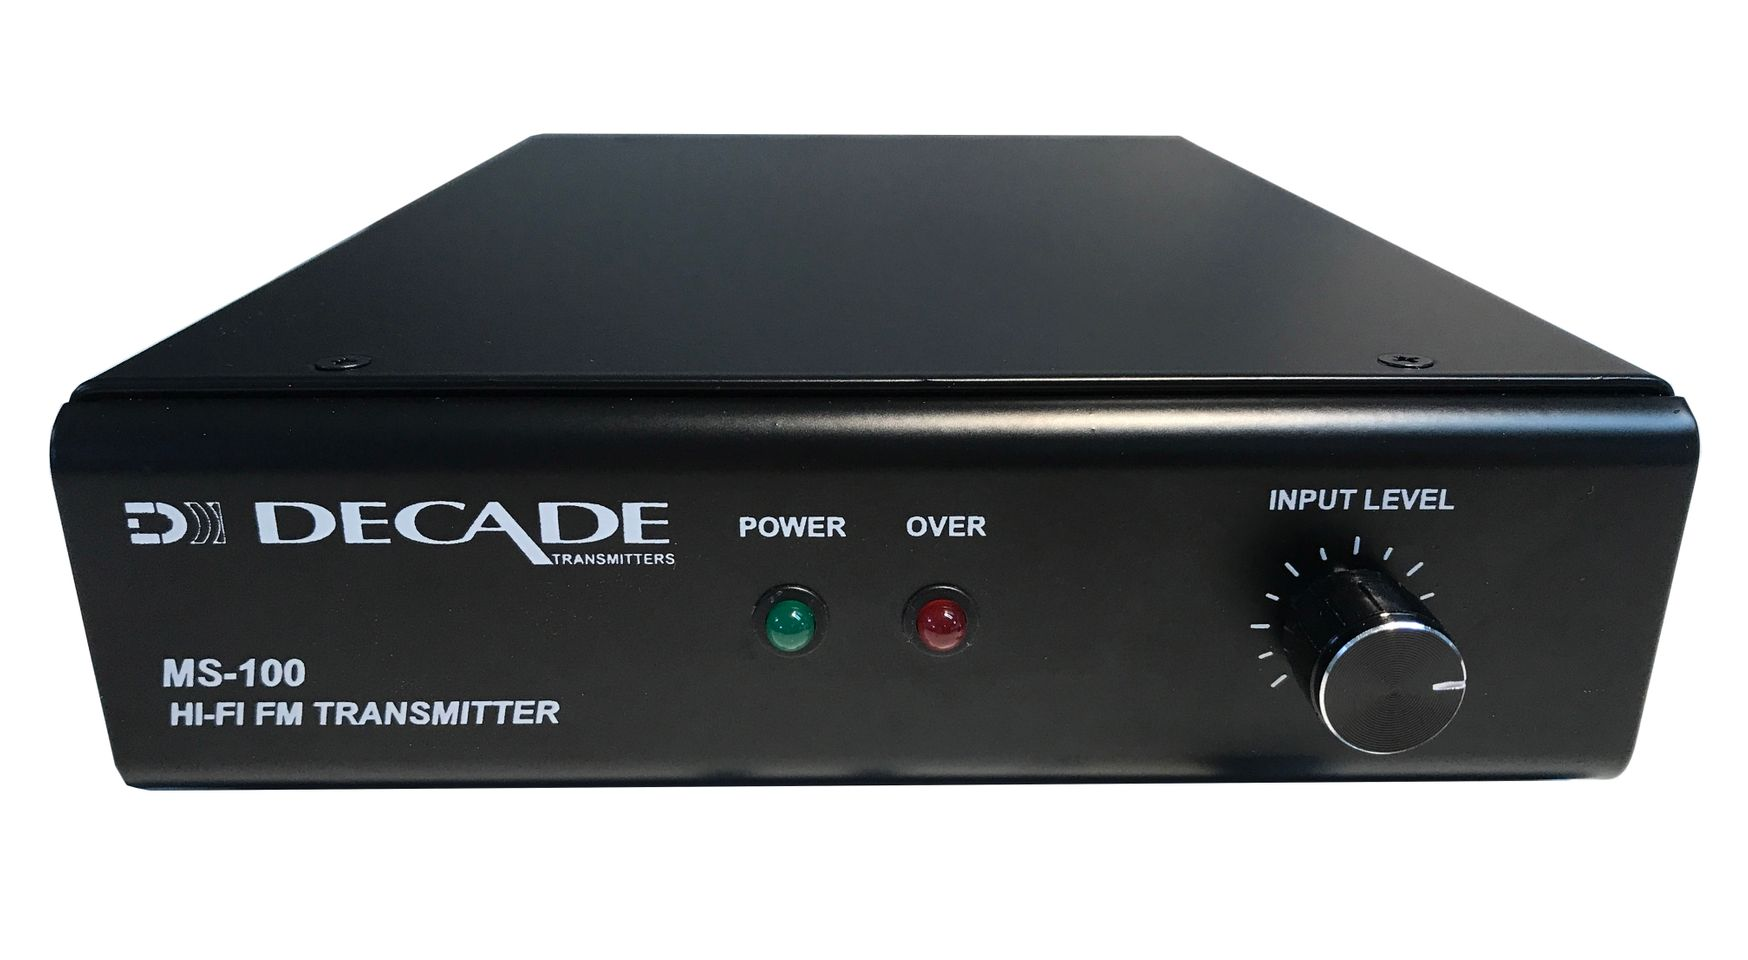 Decade MS-100  Hi-Fi FM Transmitter is available at Hollywood Sound Systems.